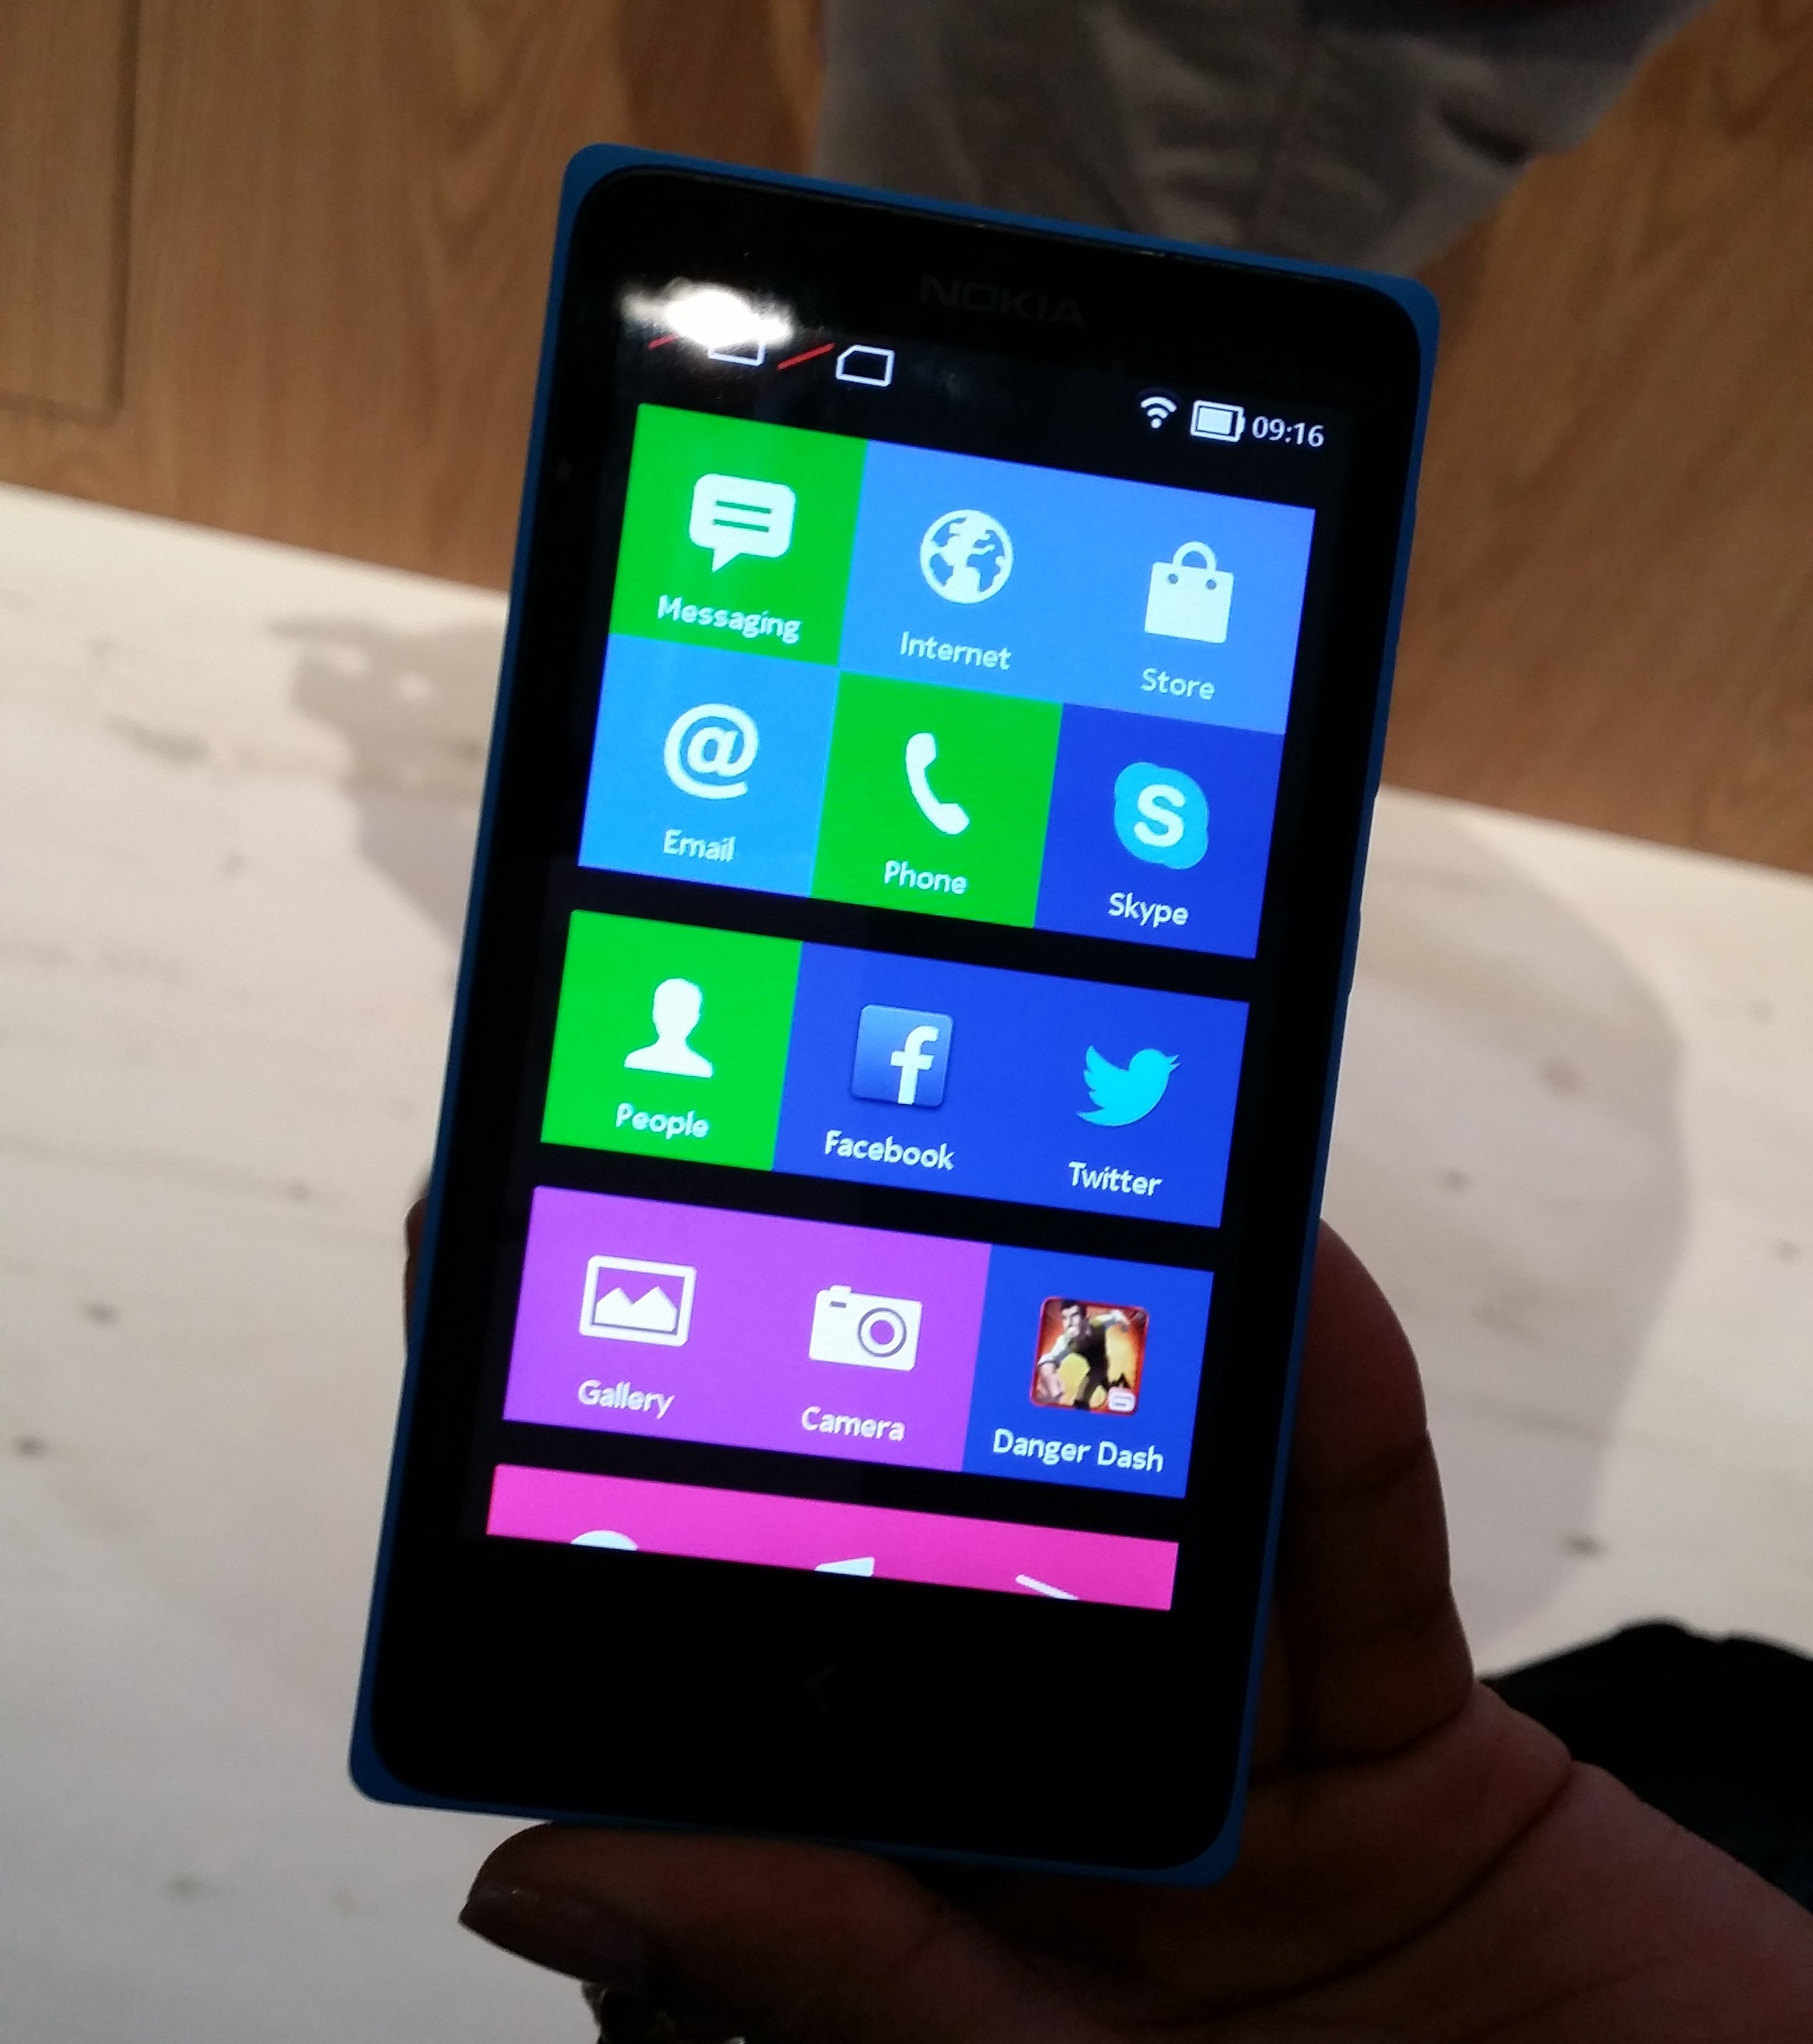 Hands-on with the Nokia X Android-based Smartphone